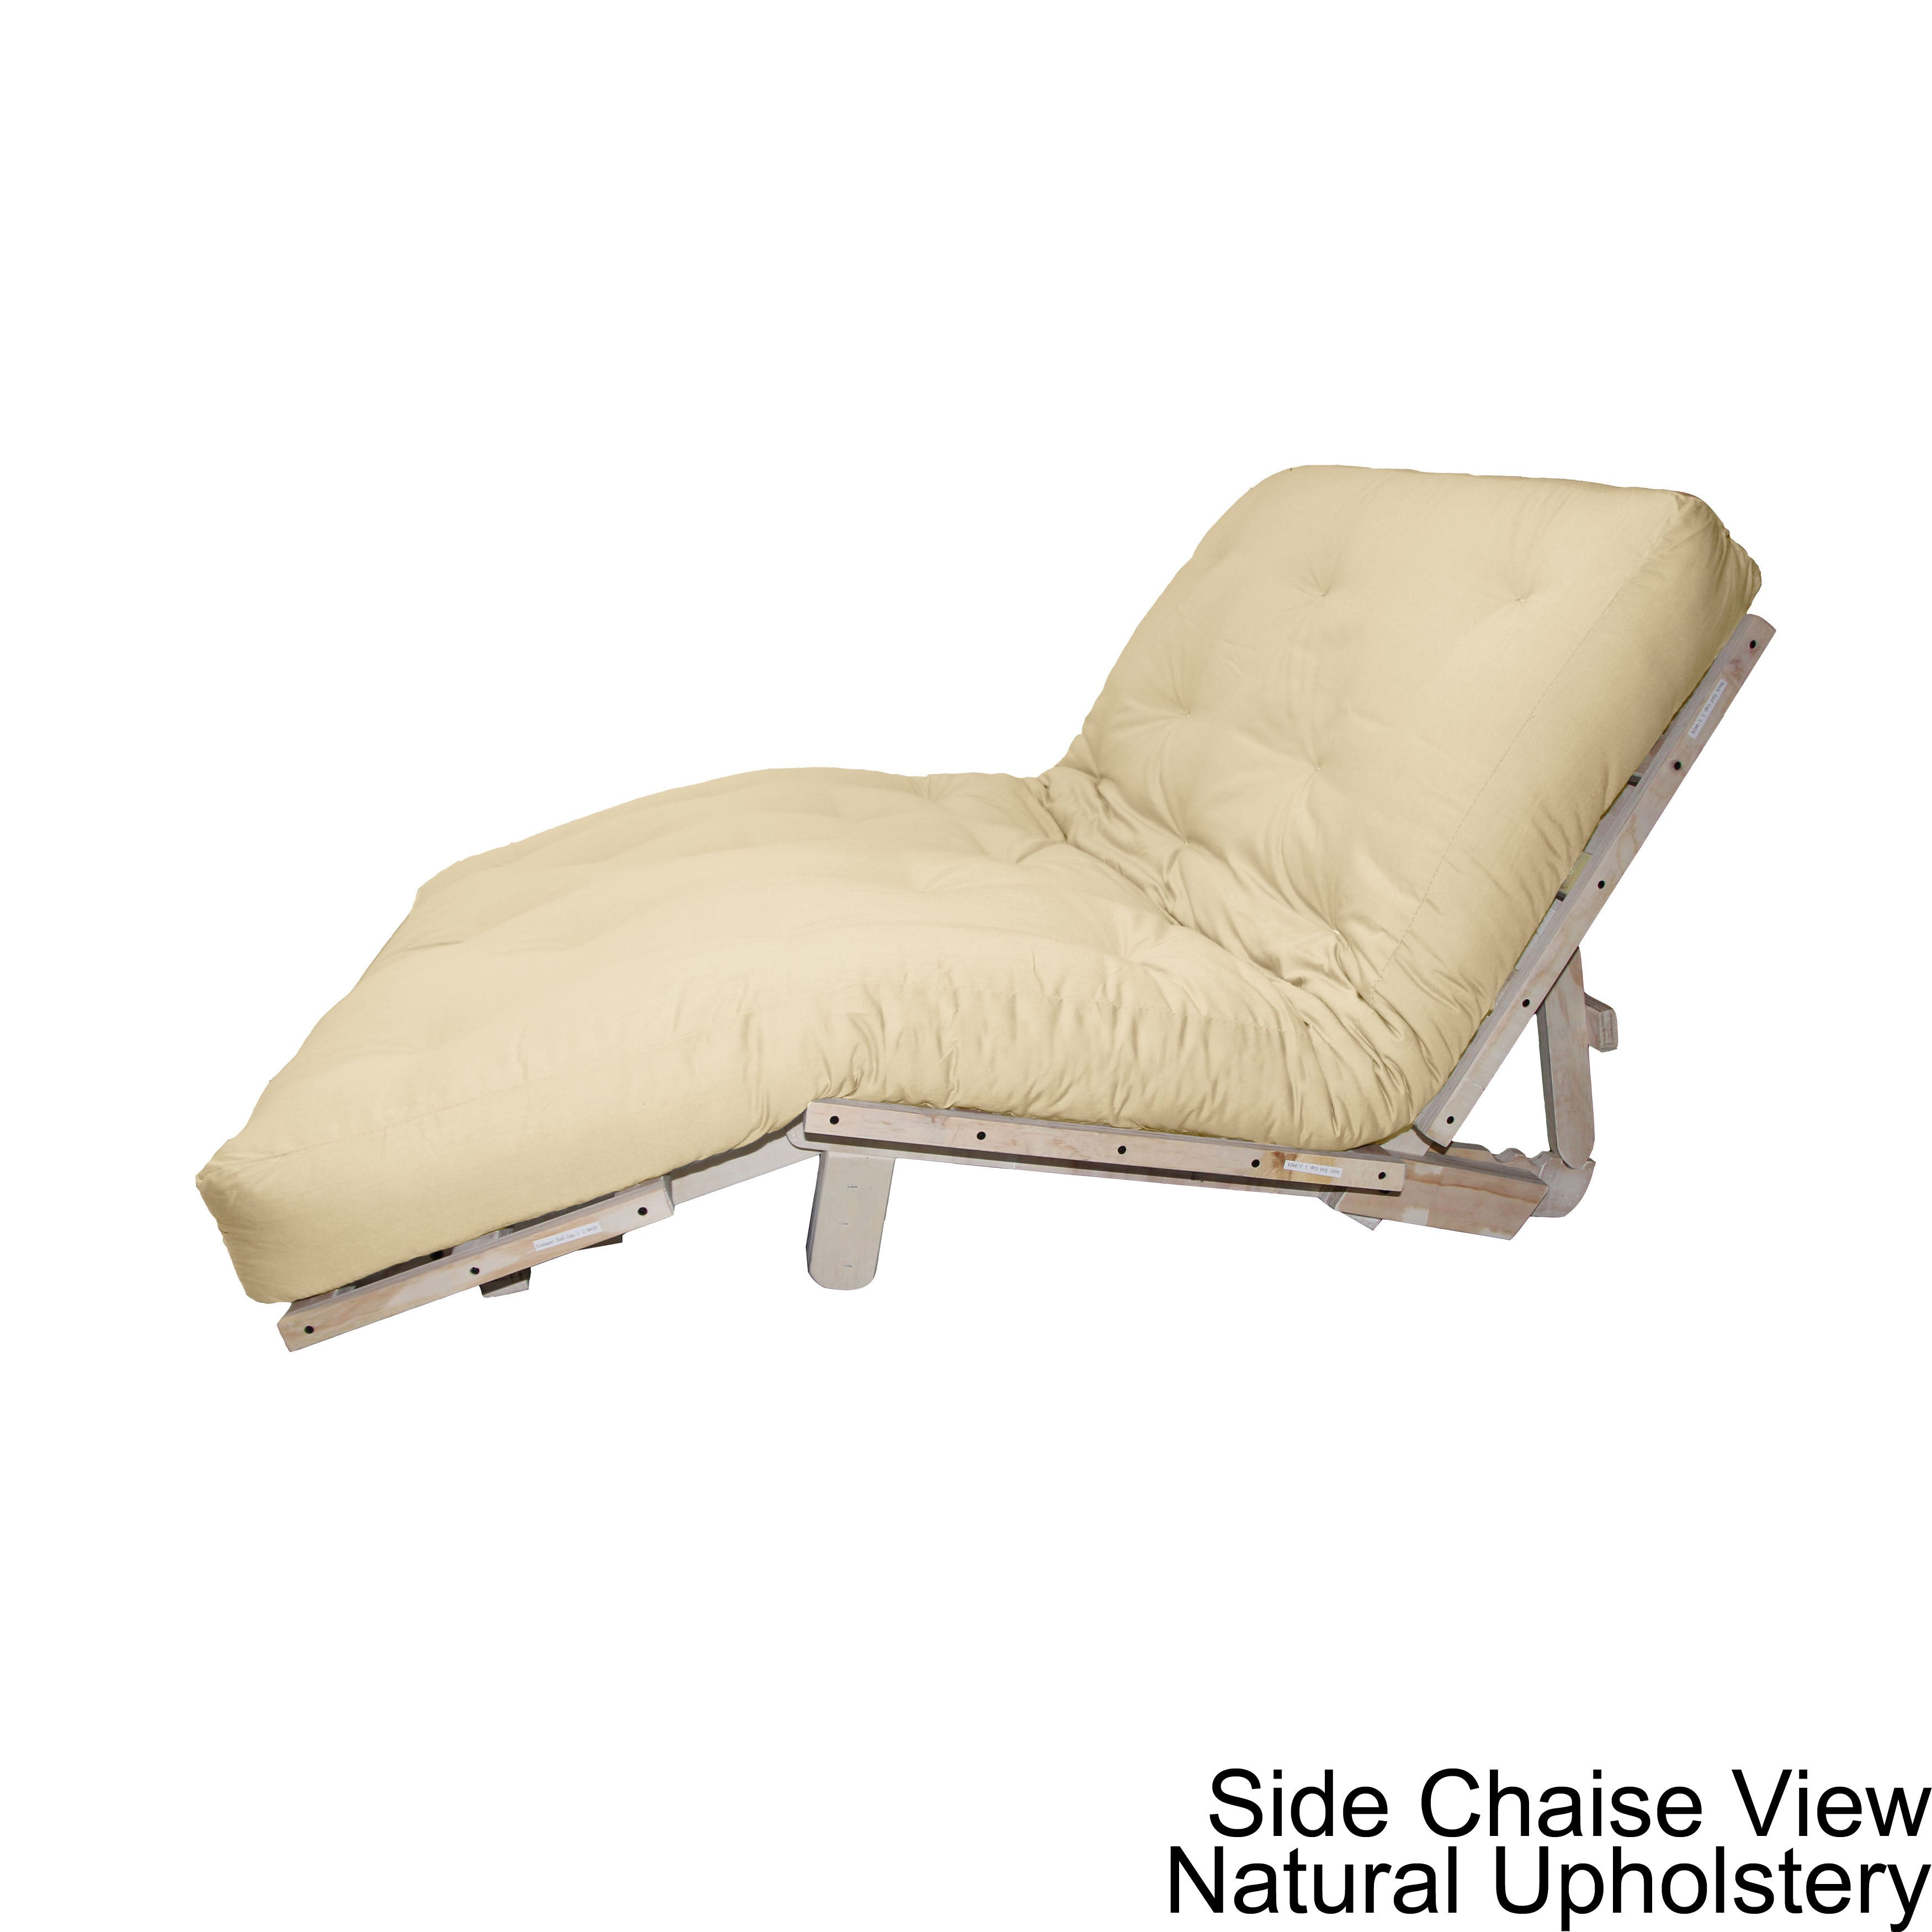 sleep today and comfortable canopy pine sofa perfect lodge bed sit on pillow style garden tuskegee top futons home overstock yosemite to sleeper shipping free product